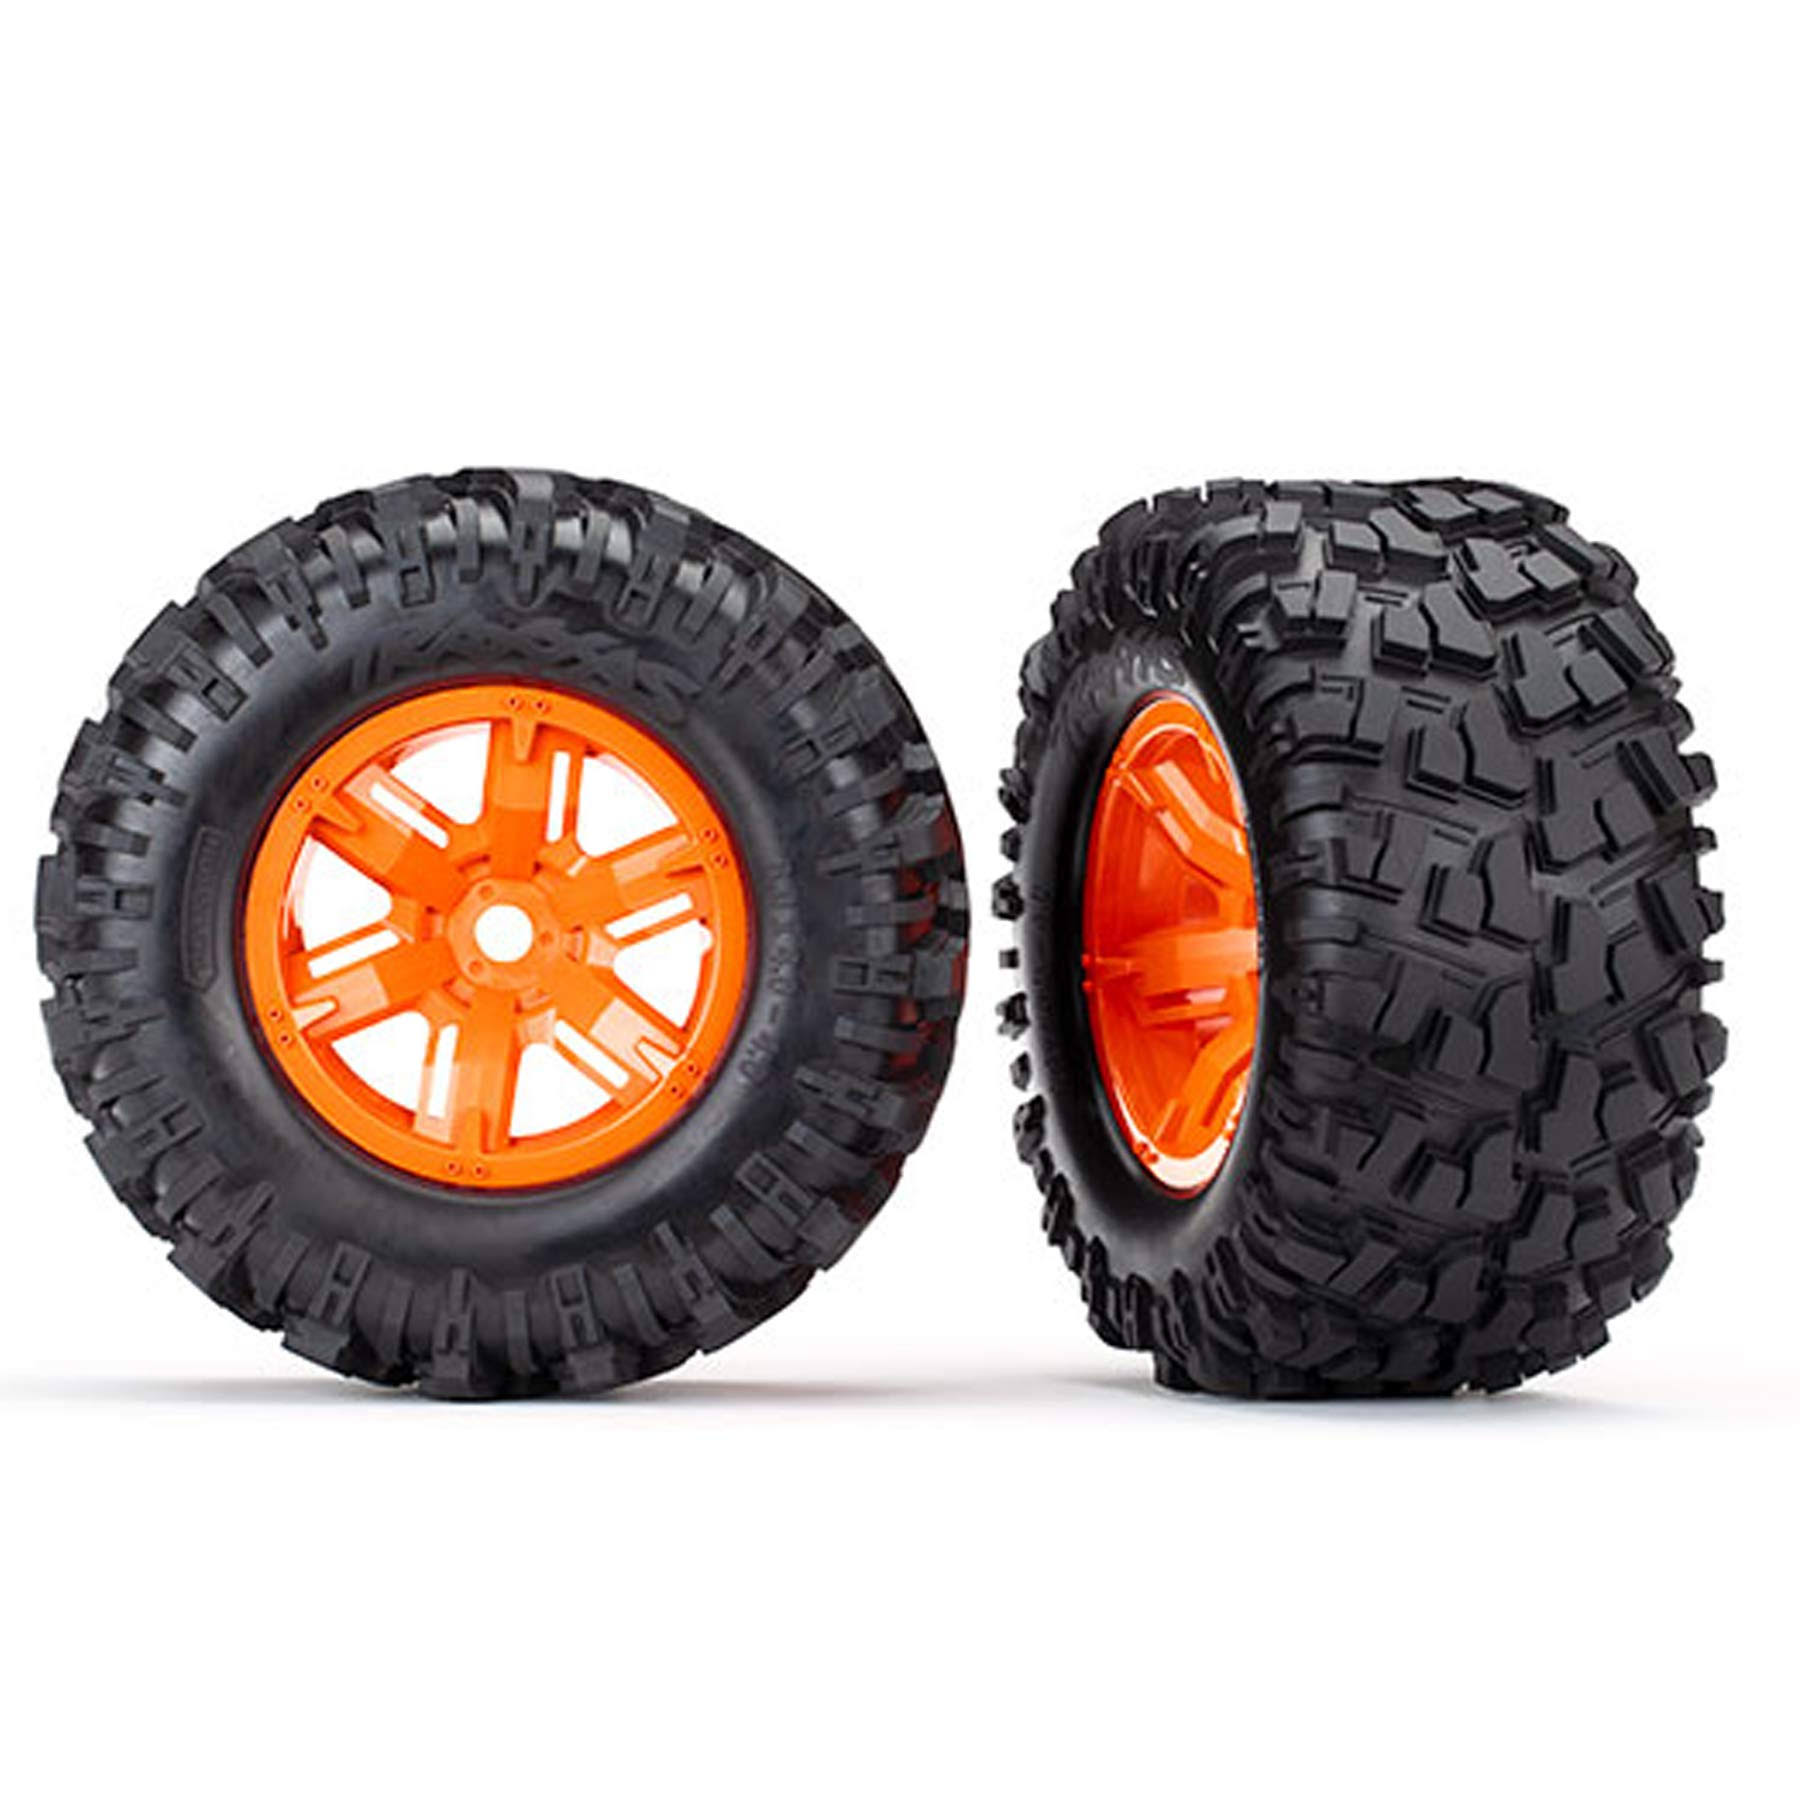 Traxxas Maxx AT Tires X Wheels - Orange